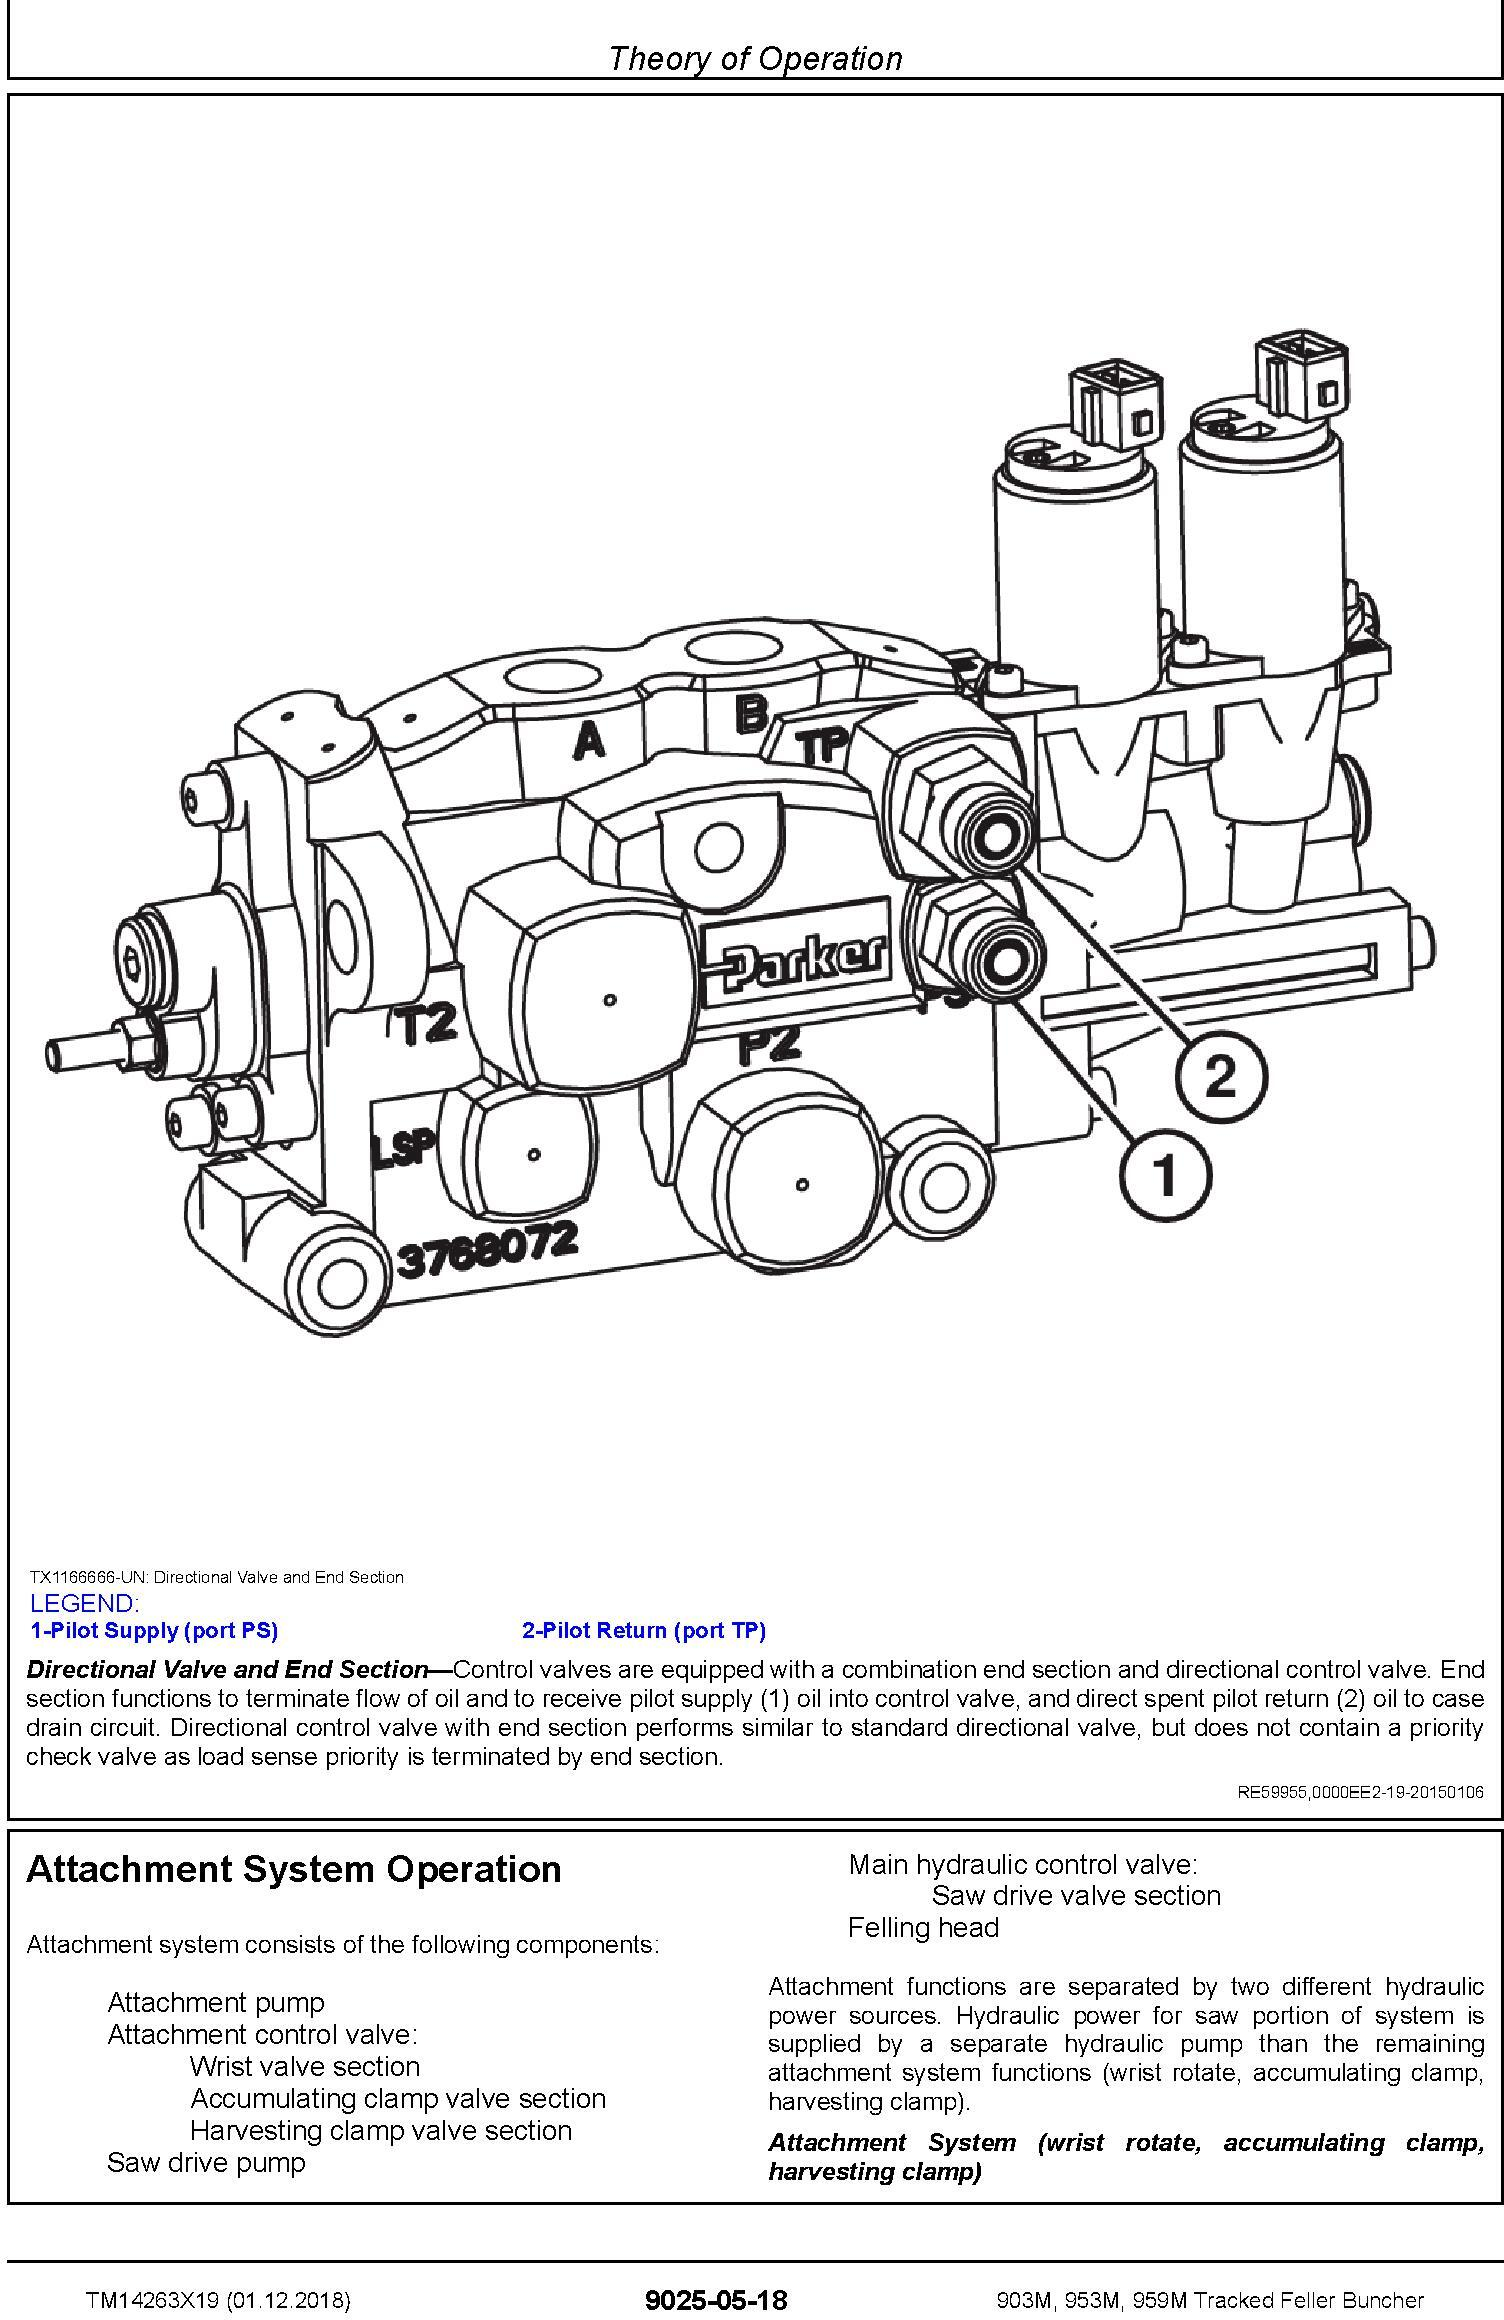 John Deere 903M,953M,959M (SN.C317982-,D317982-) Feller Buncher Diagnostic Service Manual TM14263X19 - 3